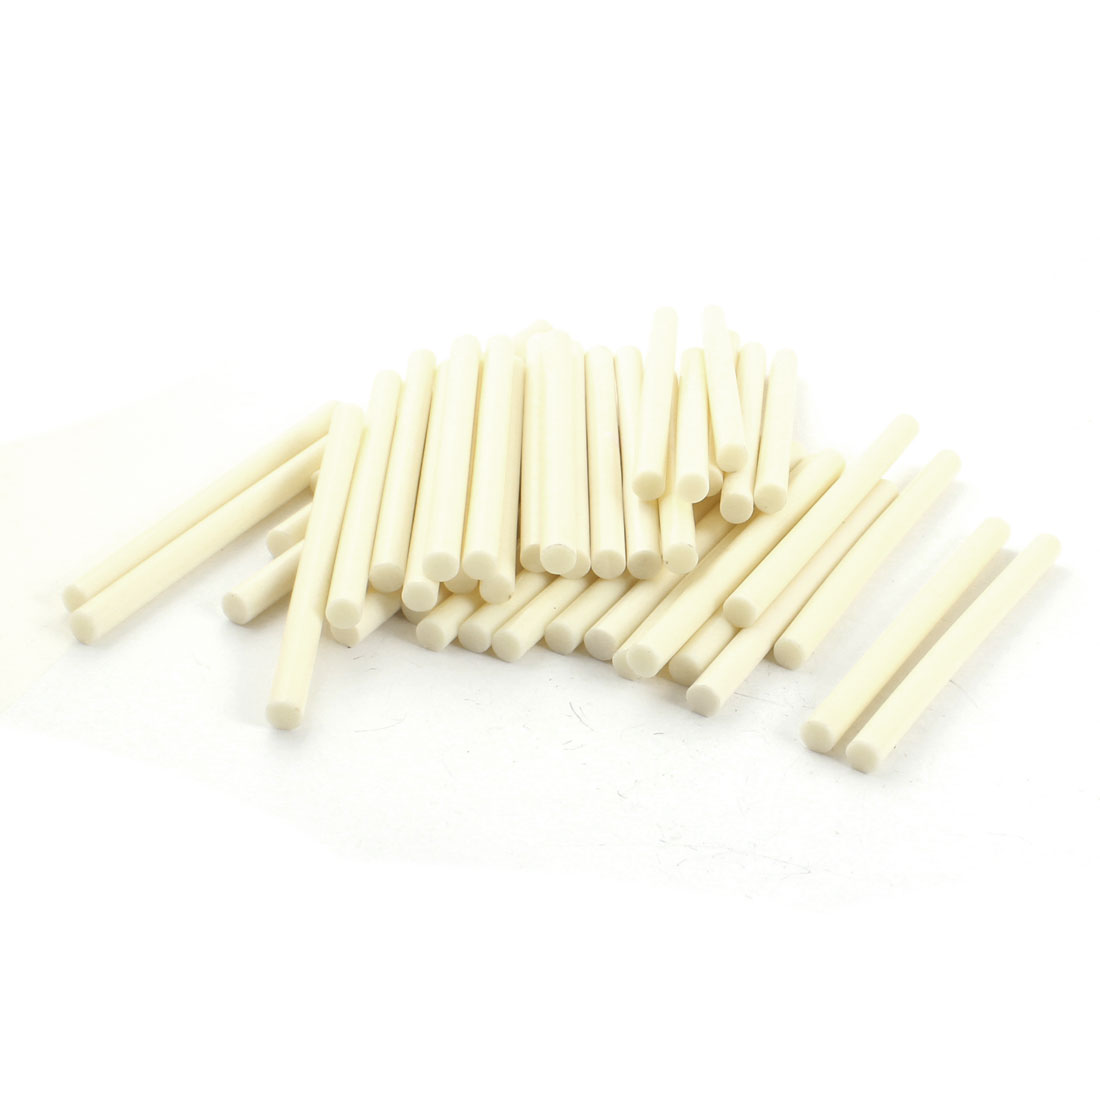 50 Pcs Ivory Hot Melt Glue Gun Adhesive Sticks 7mm x 100mm for Crafting Models